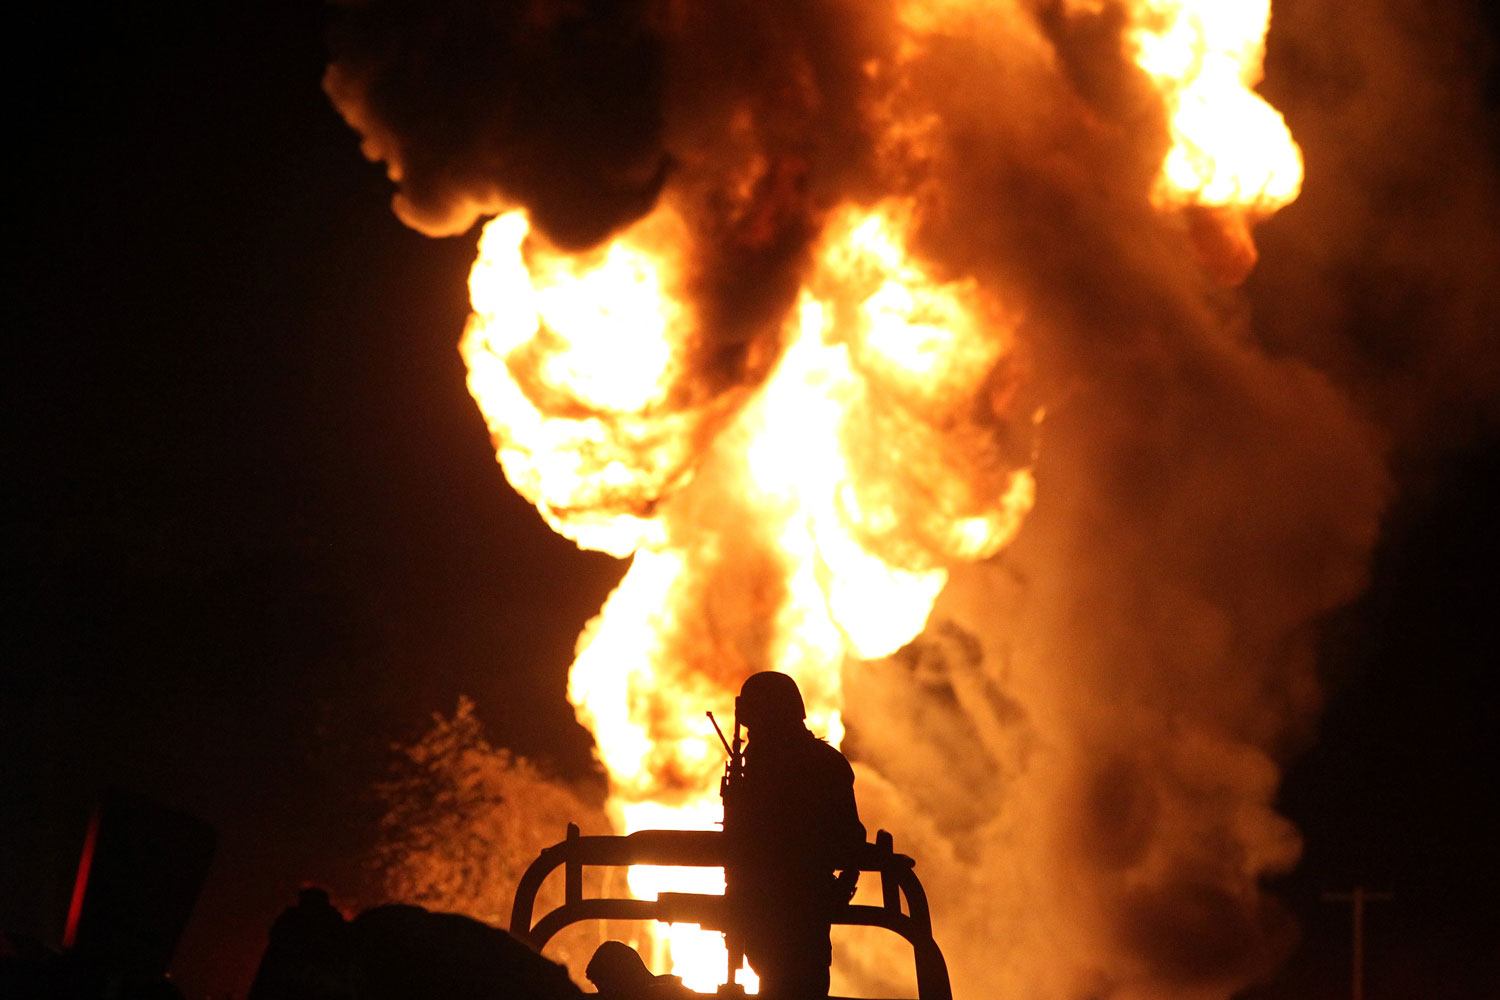 A Mexican soldier stands guard while workers of the state-owned oil company Pemex and local firefighters work to control a fire believed to have started in a pipeline due to fuel-theft activity in the community of San Sebastianito on April 3. Fuel theft is becoming more common every year in Mexico as drug cartels and other gangs diversify their illegal activities. Thousands of illegal taps were discovered in pipelines in recent years. (Ulises Ruiz/AFP/Getty Images)